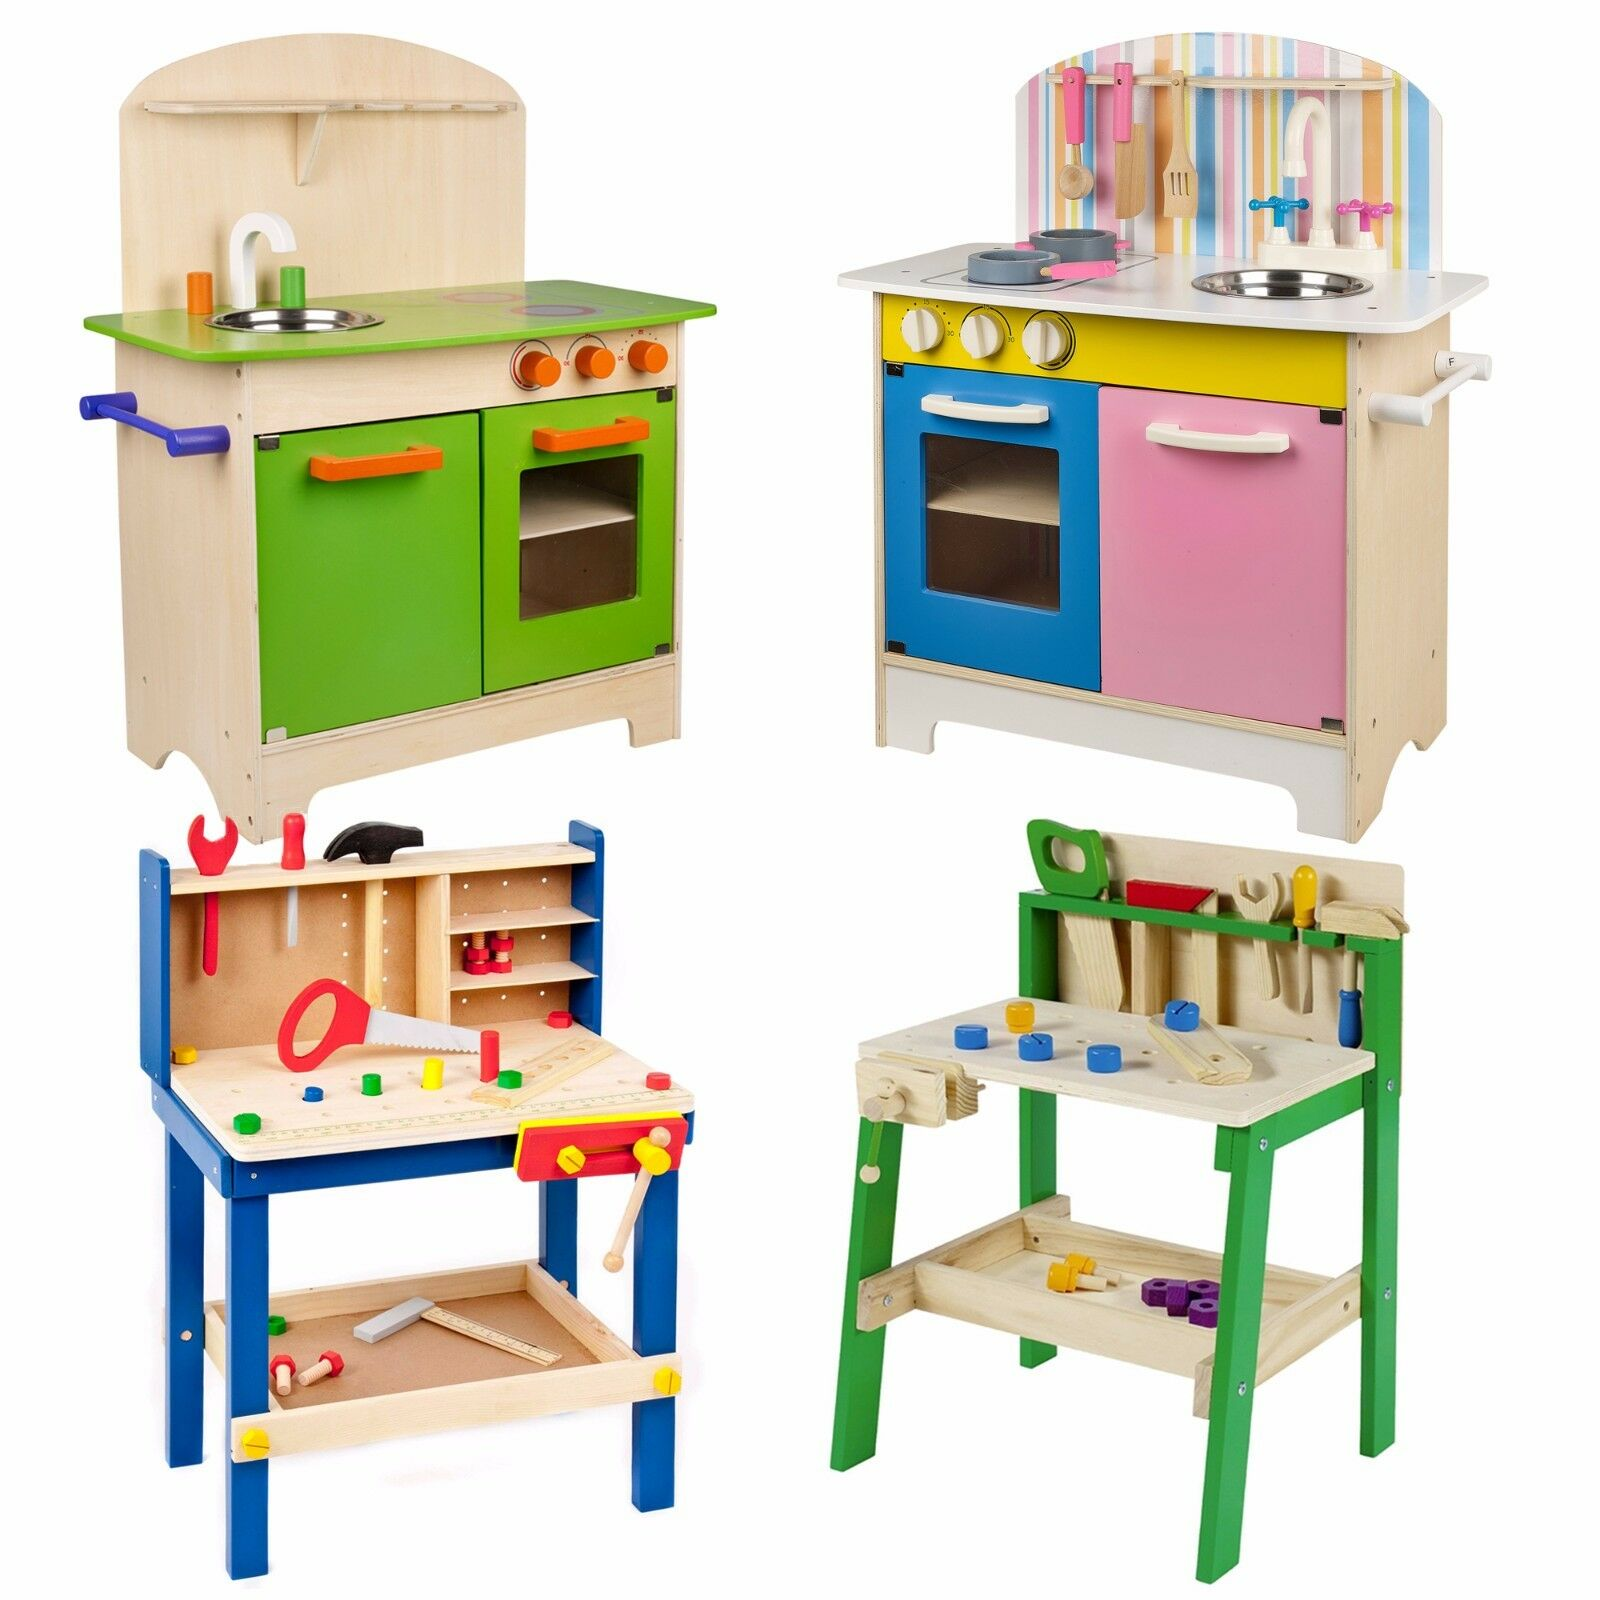 KIDS WOODEN WORK Tool Bench Kitchen Set Pretend Play Toys Cooking ...